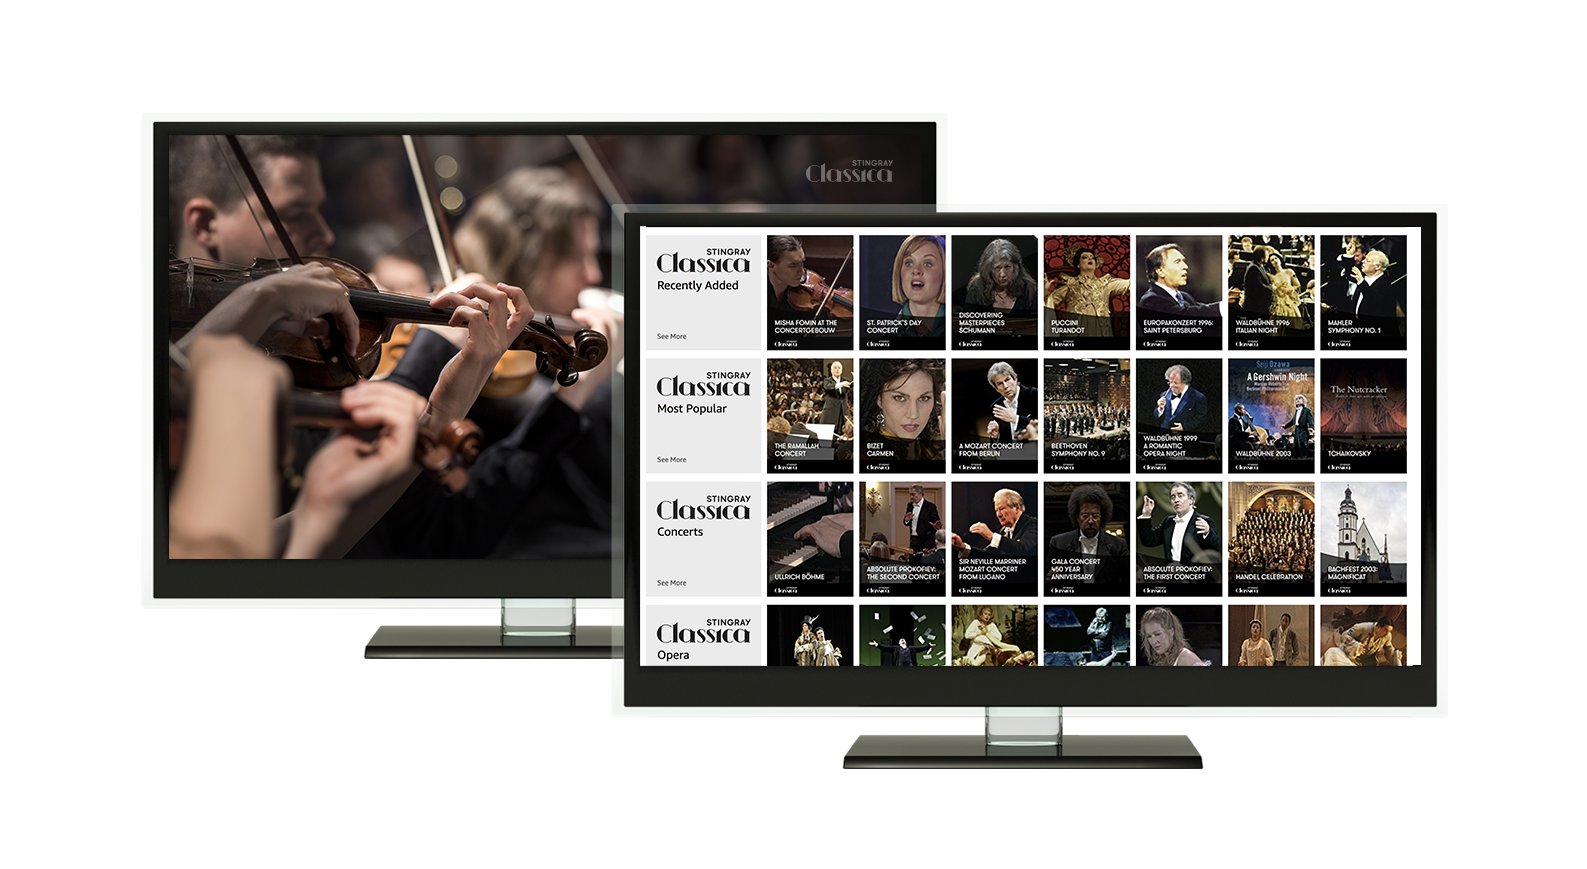 Classical Music on Demand | Stingray Classica